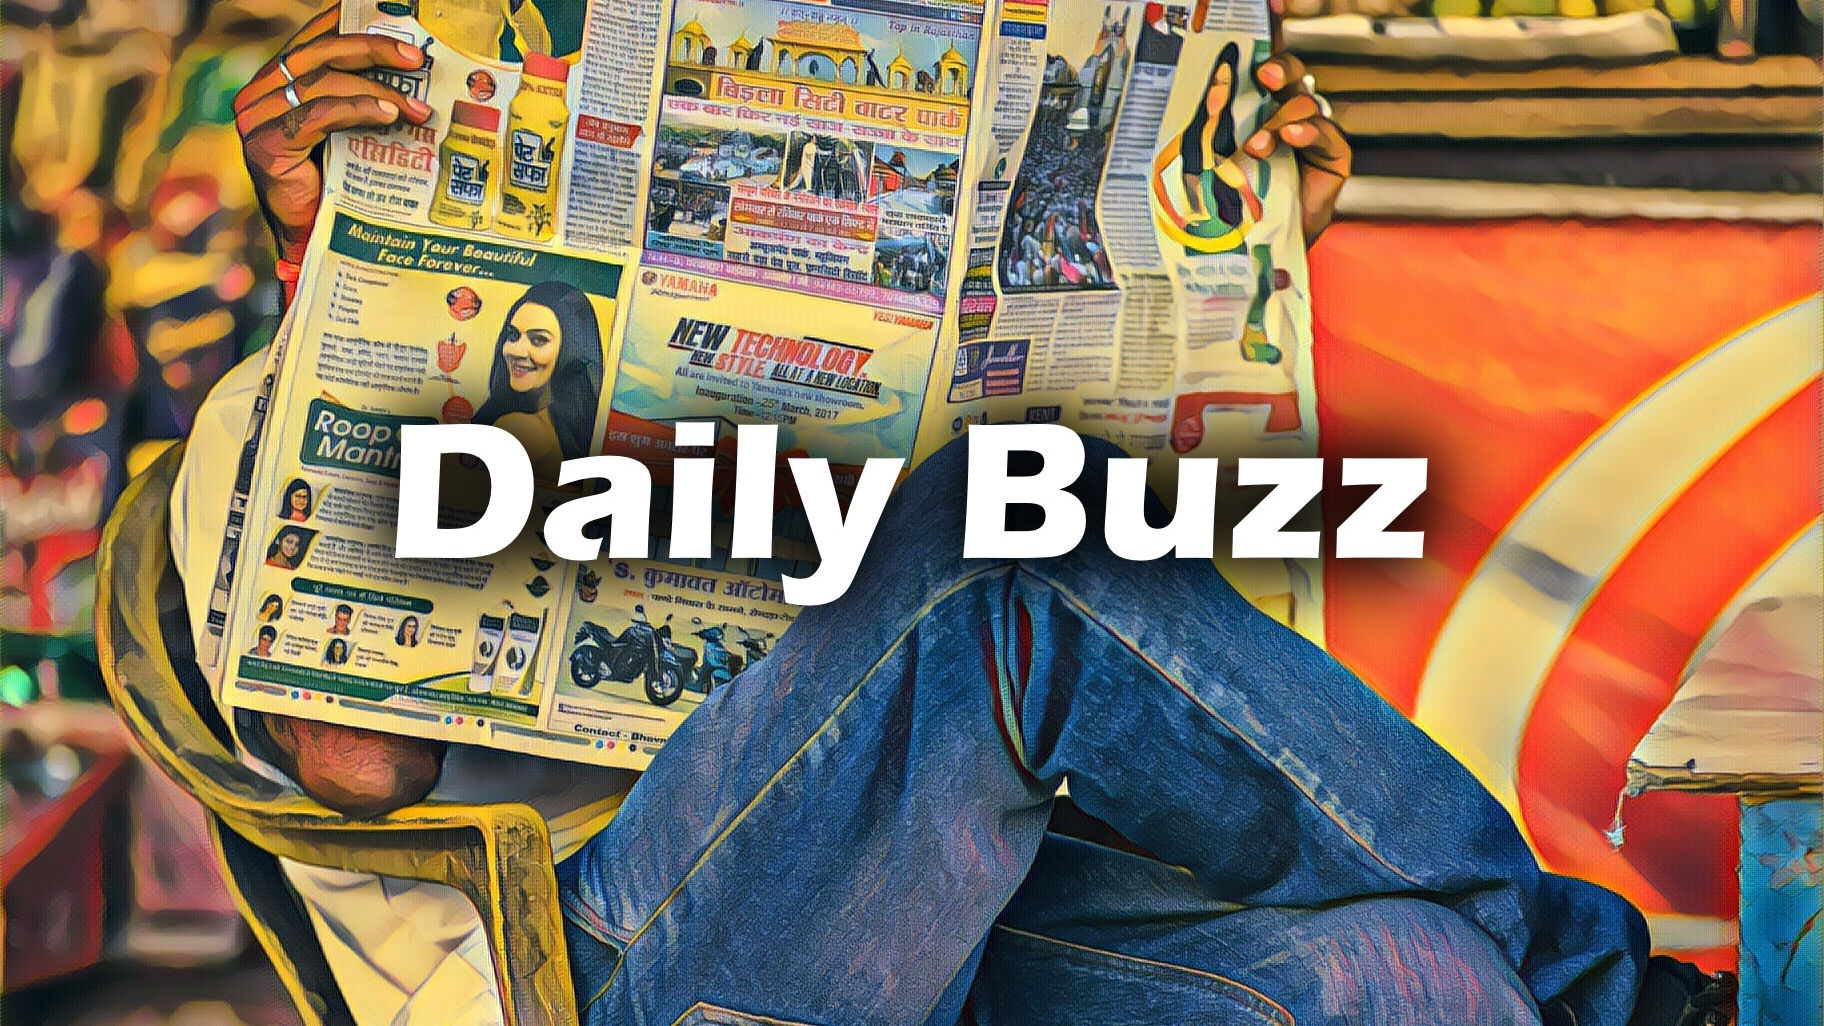 DailyBuzz Monday 23 July 2018